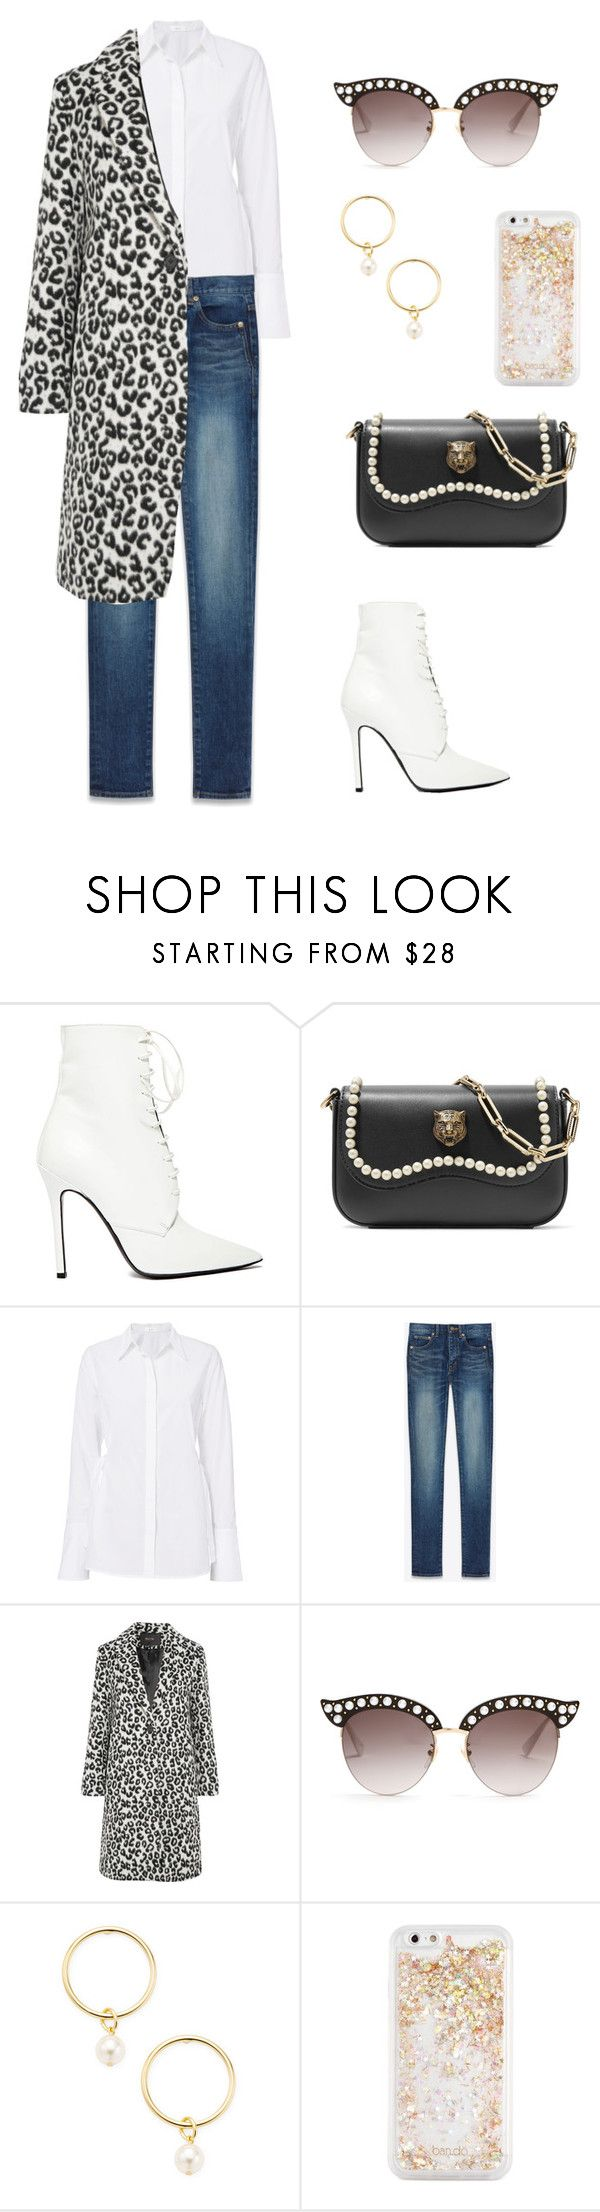 """""""Day off"""" by eva-dato on Polyvore featuring moda, Yang Li, Gucci, A.L.C., Yves Saint Laurent, Maje, Renvy y ban.do"""